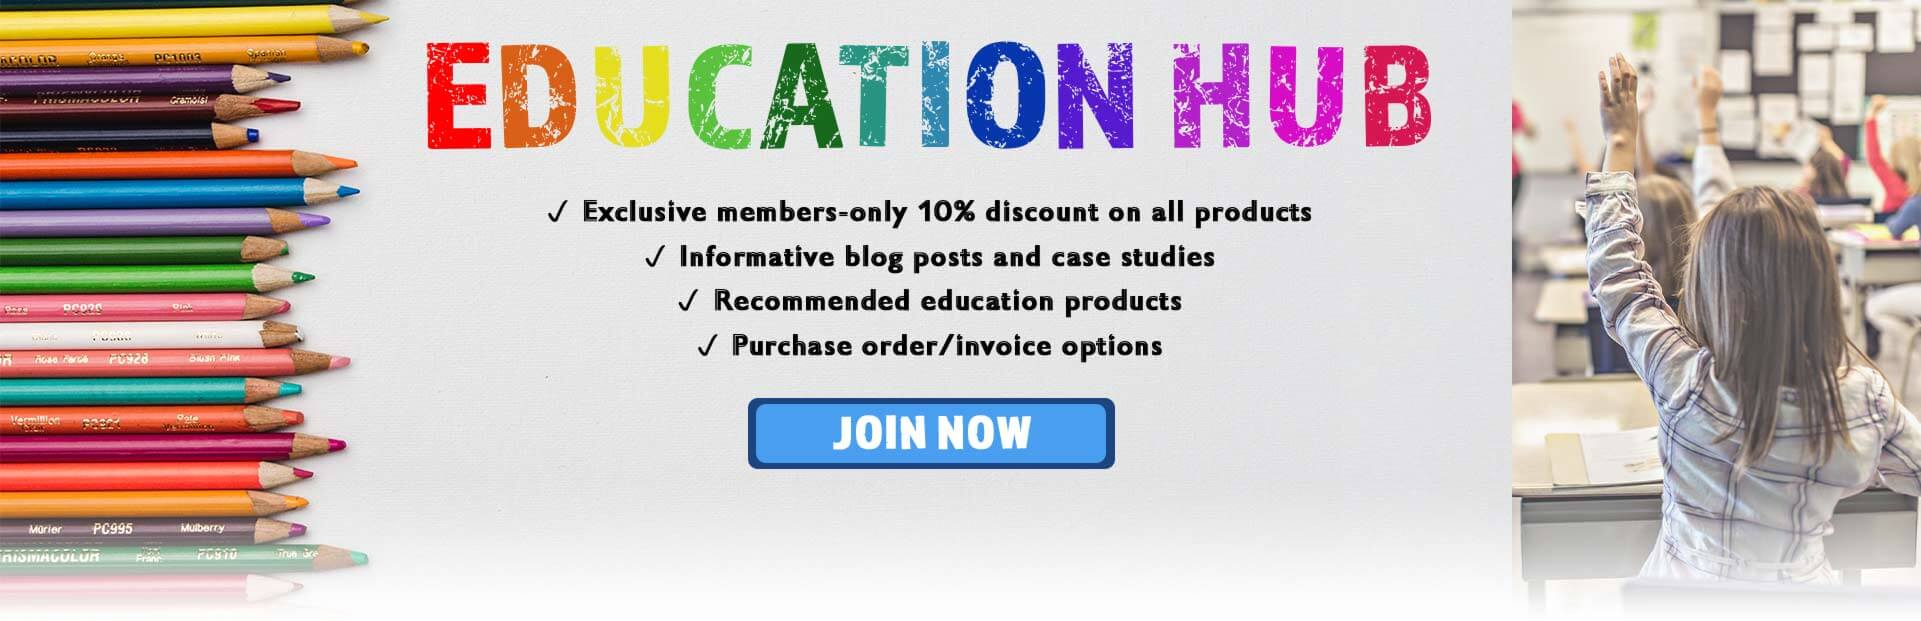 Education-Hub-banner